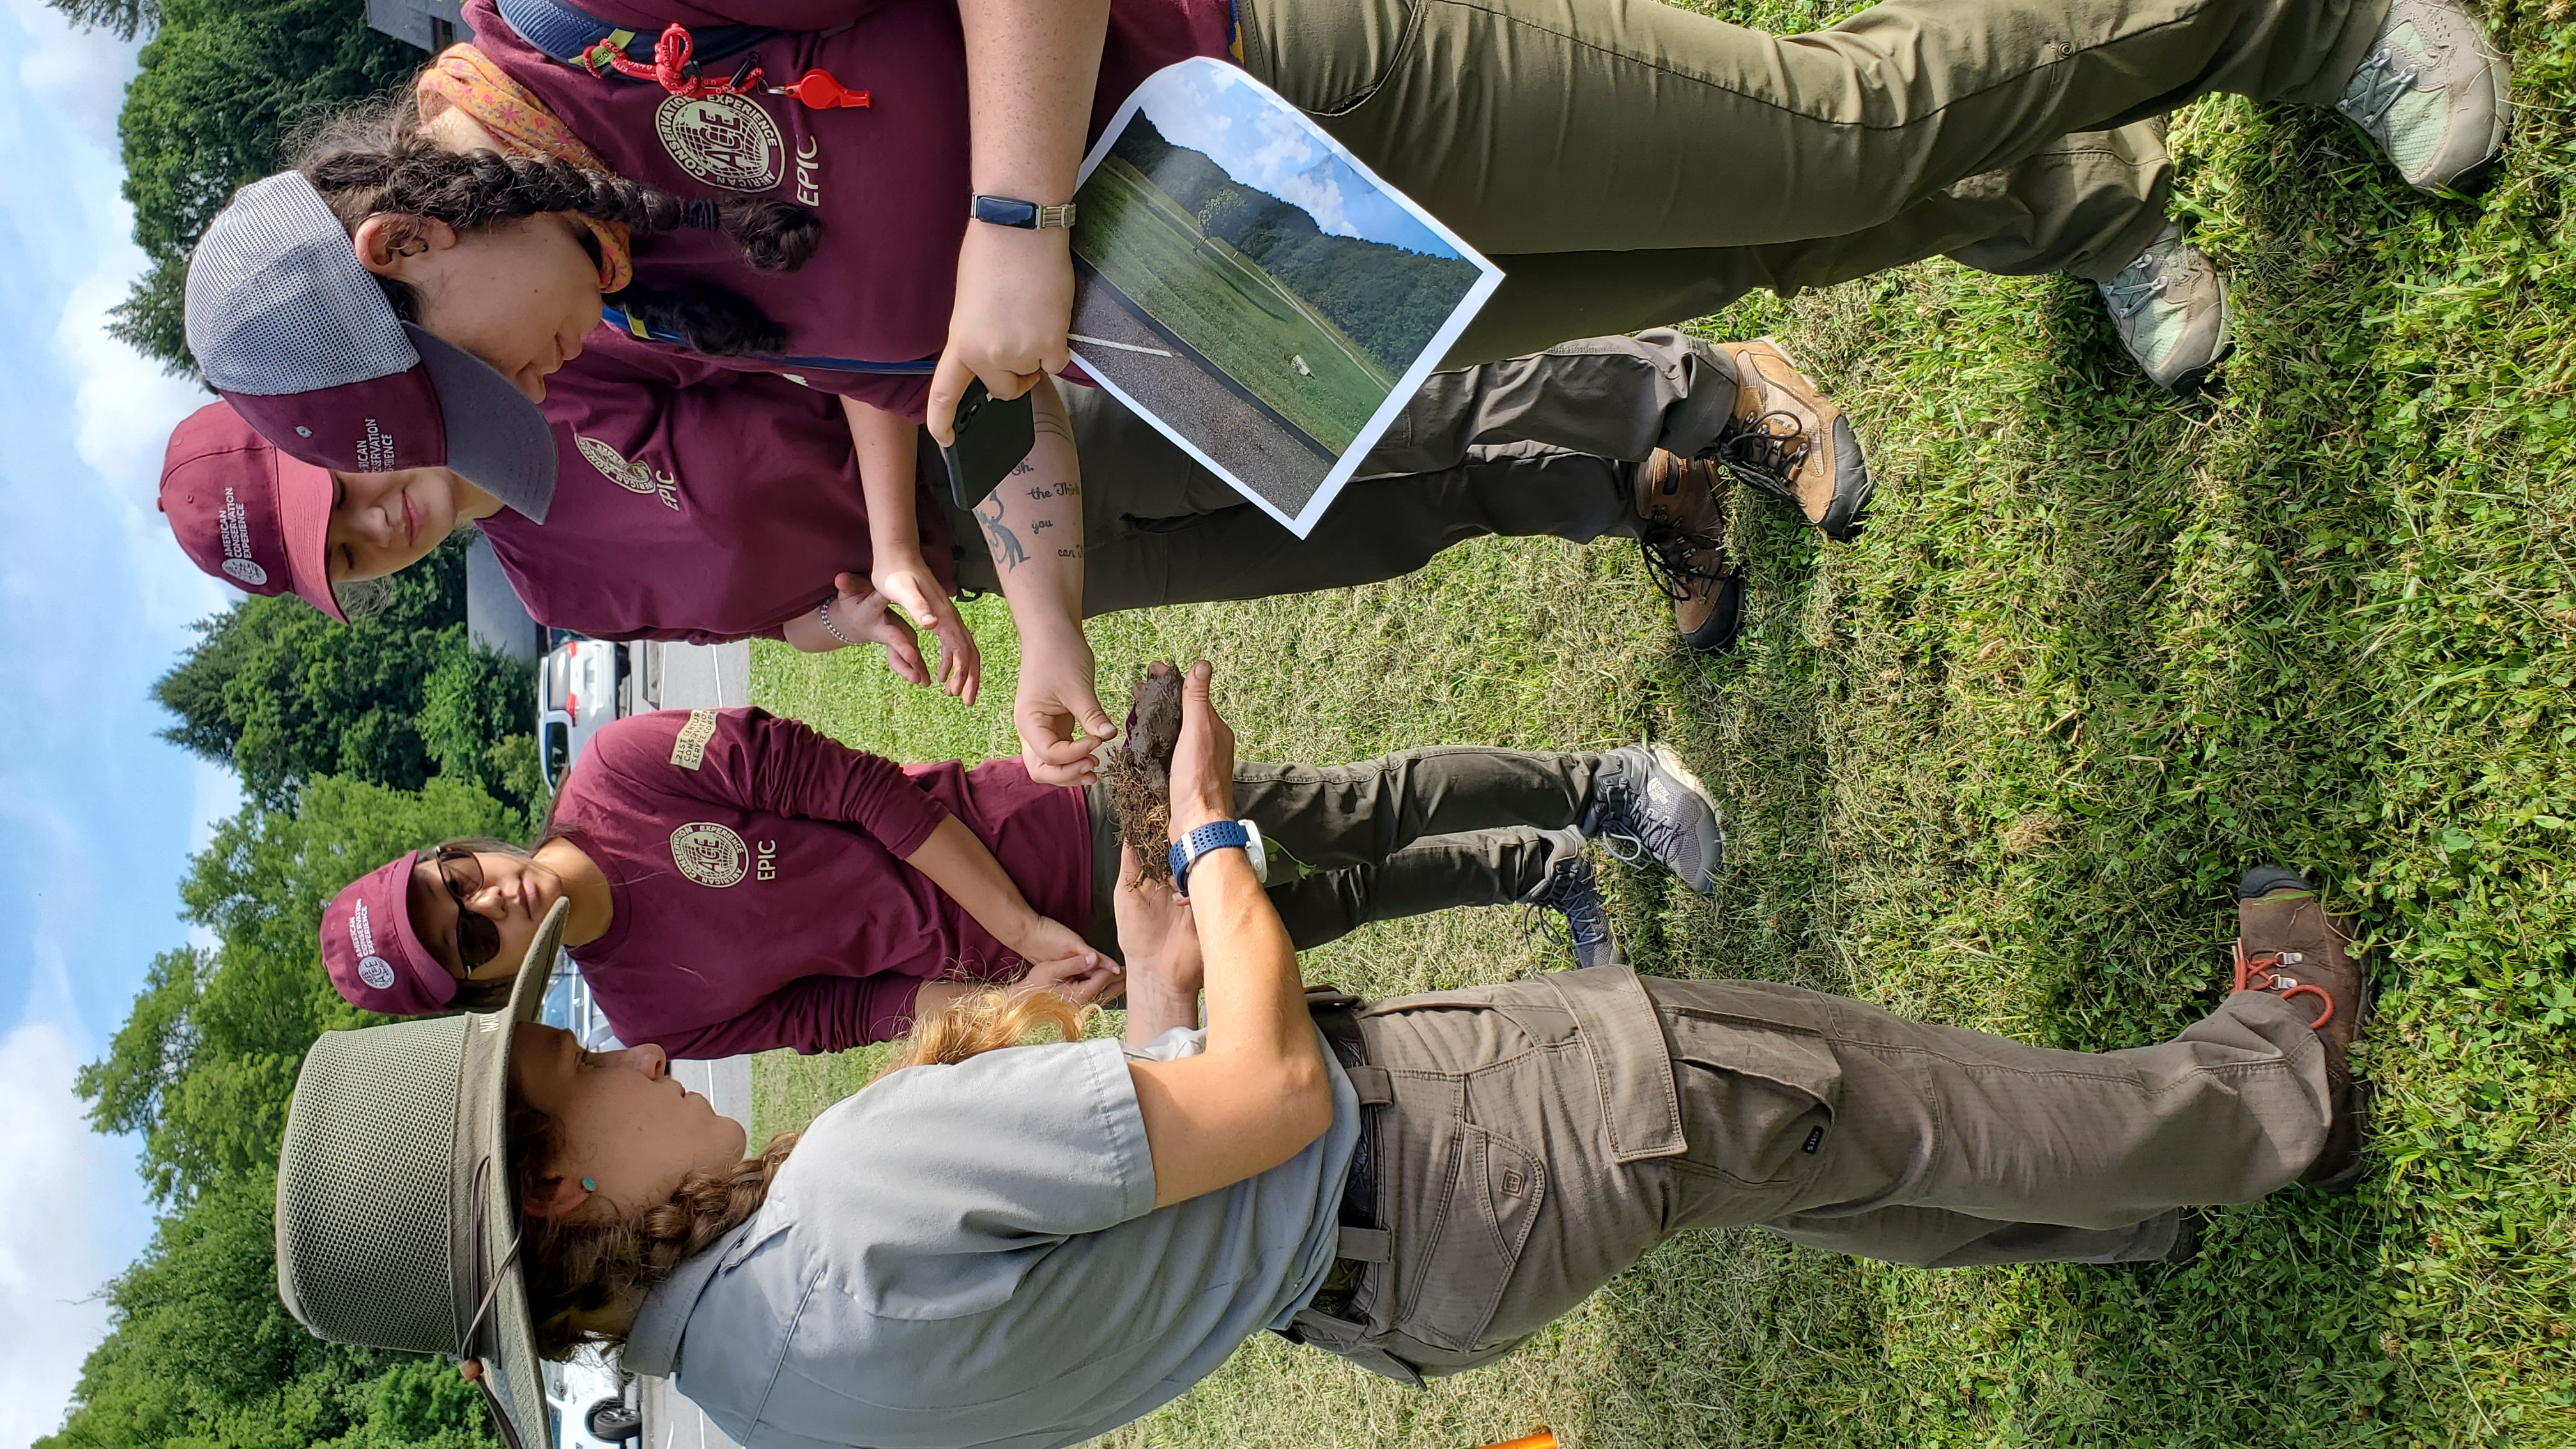 NPS biological science technician Alix Pfennigwerth shows a soil specimen from a local wetland to interns Stella Walborn, Phoebe Carnes, and Chelsea Tharp. Courtesy NPS.